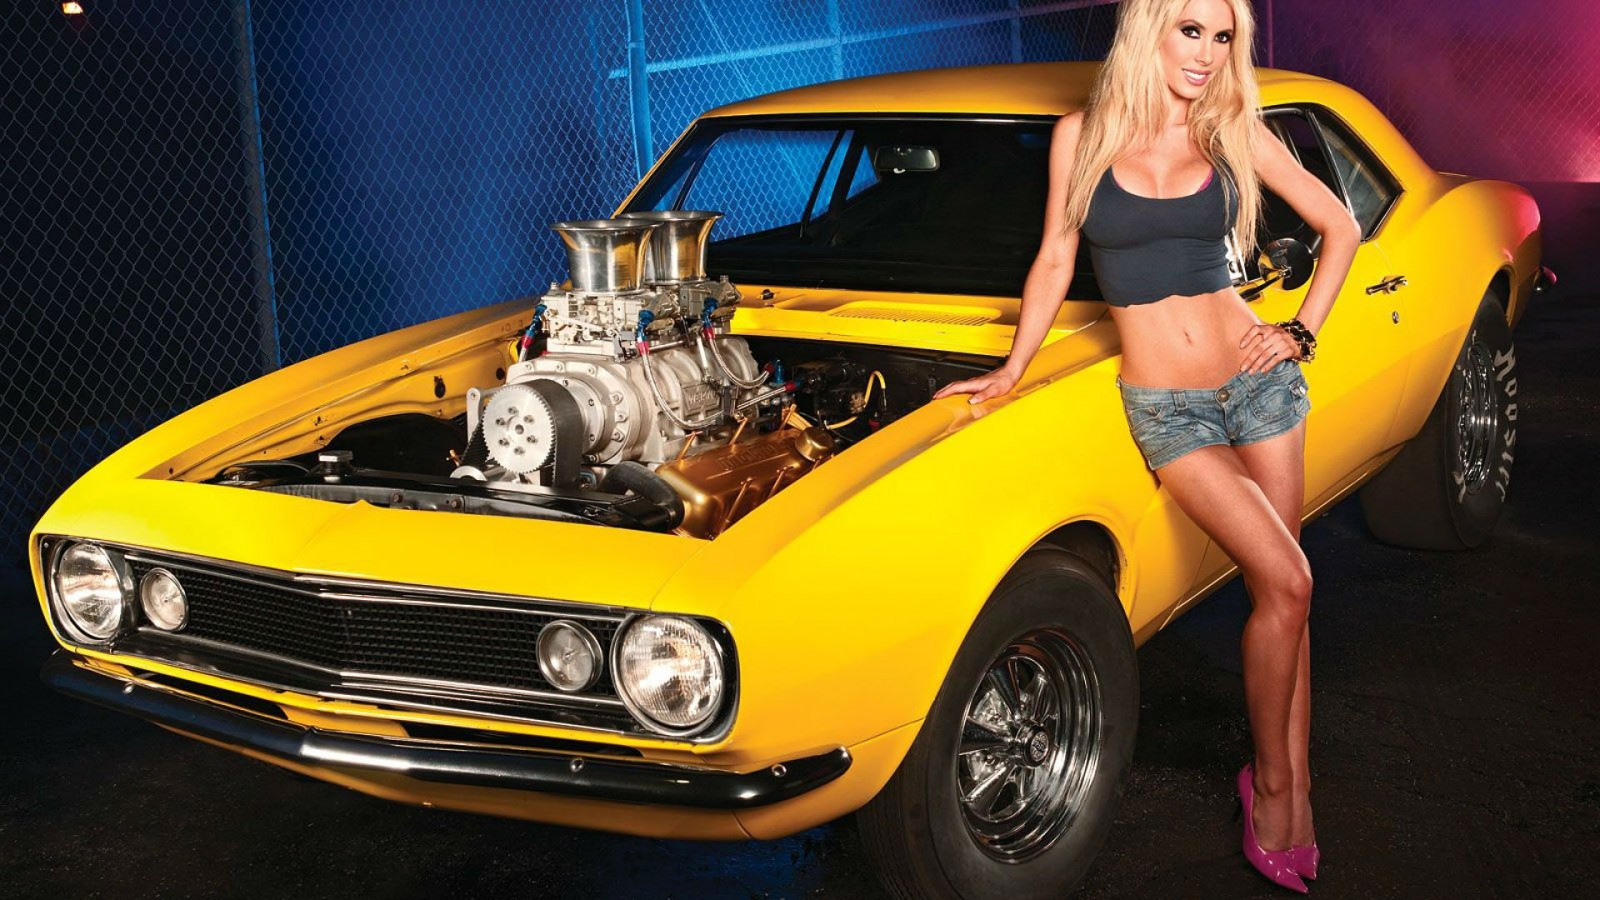 hot-girls-and-muscle-cars-wet-hot-naked-asian-girls